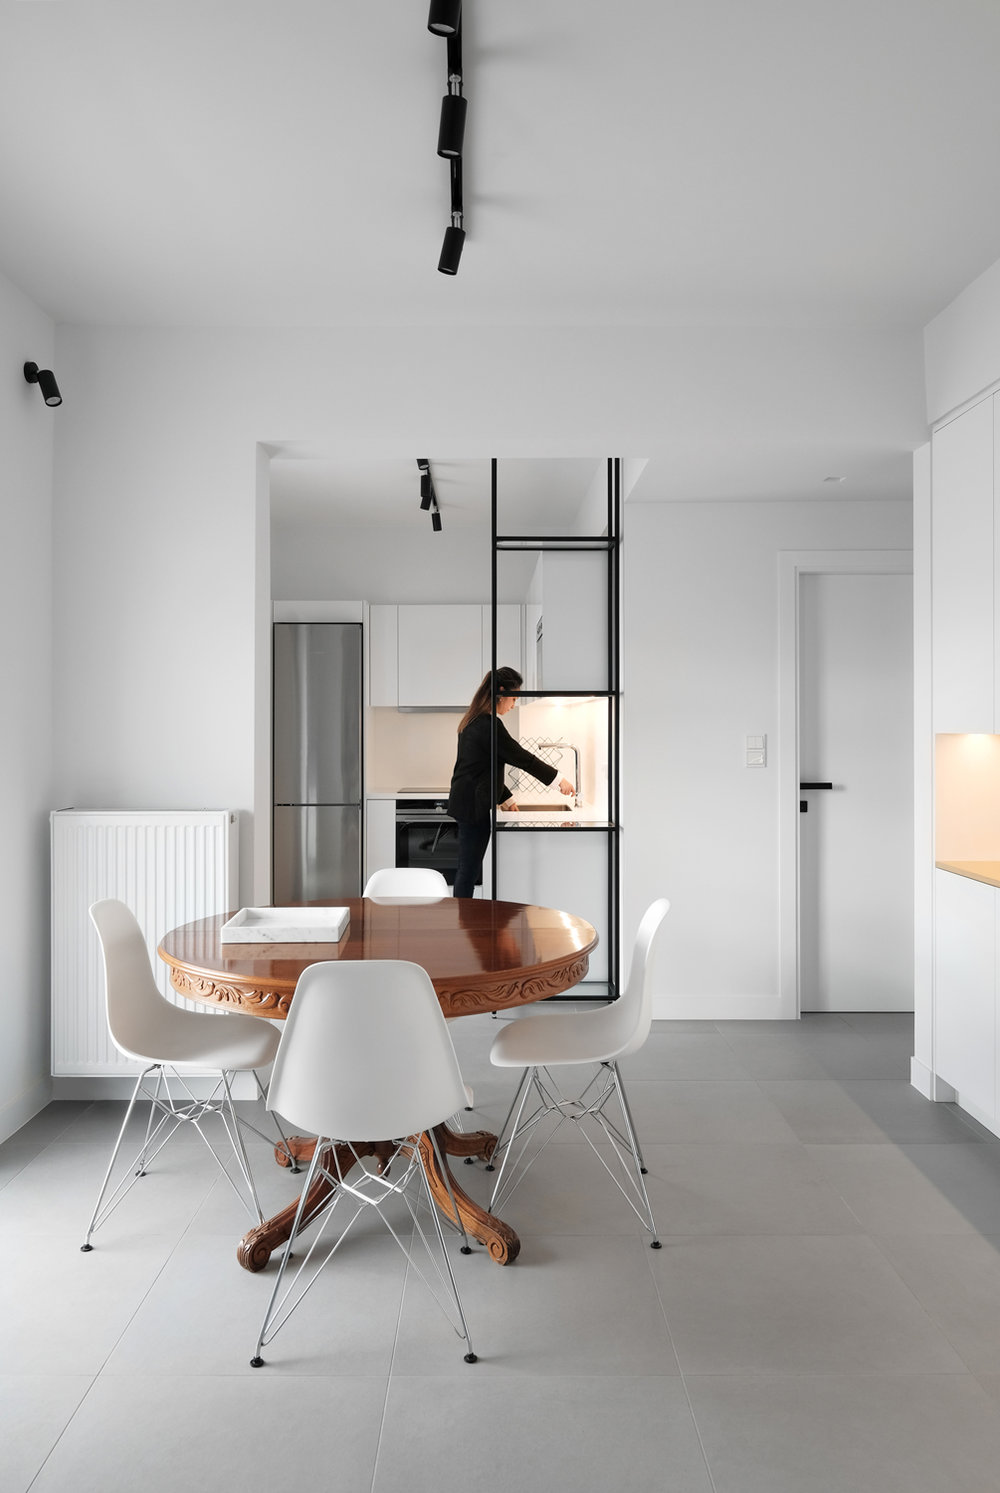 Apartment renovation in Kallithea, Papandreou-Tsakmaki architects